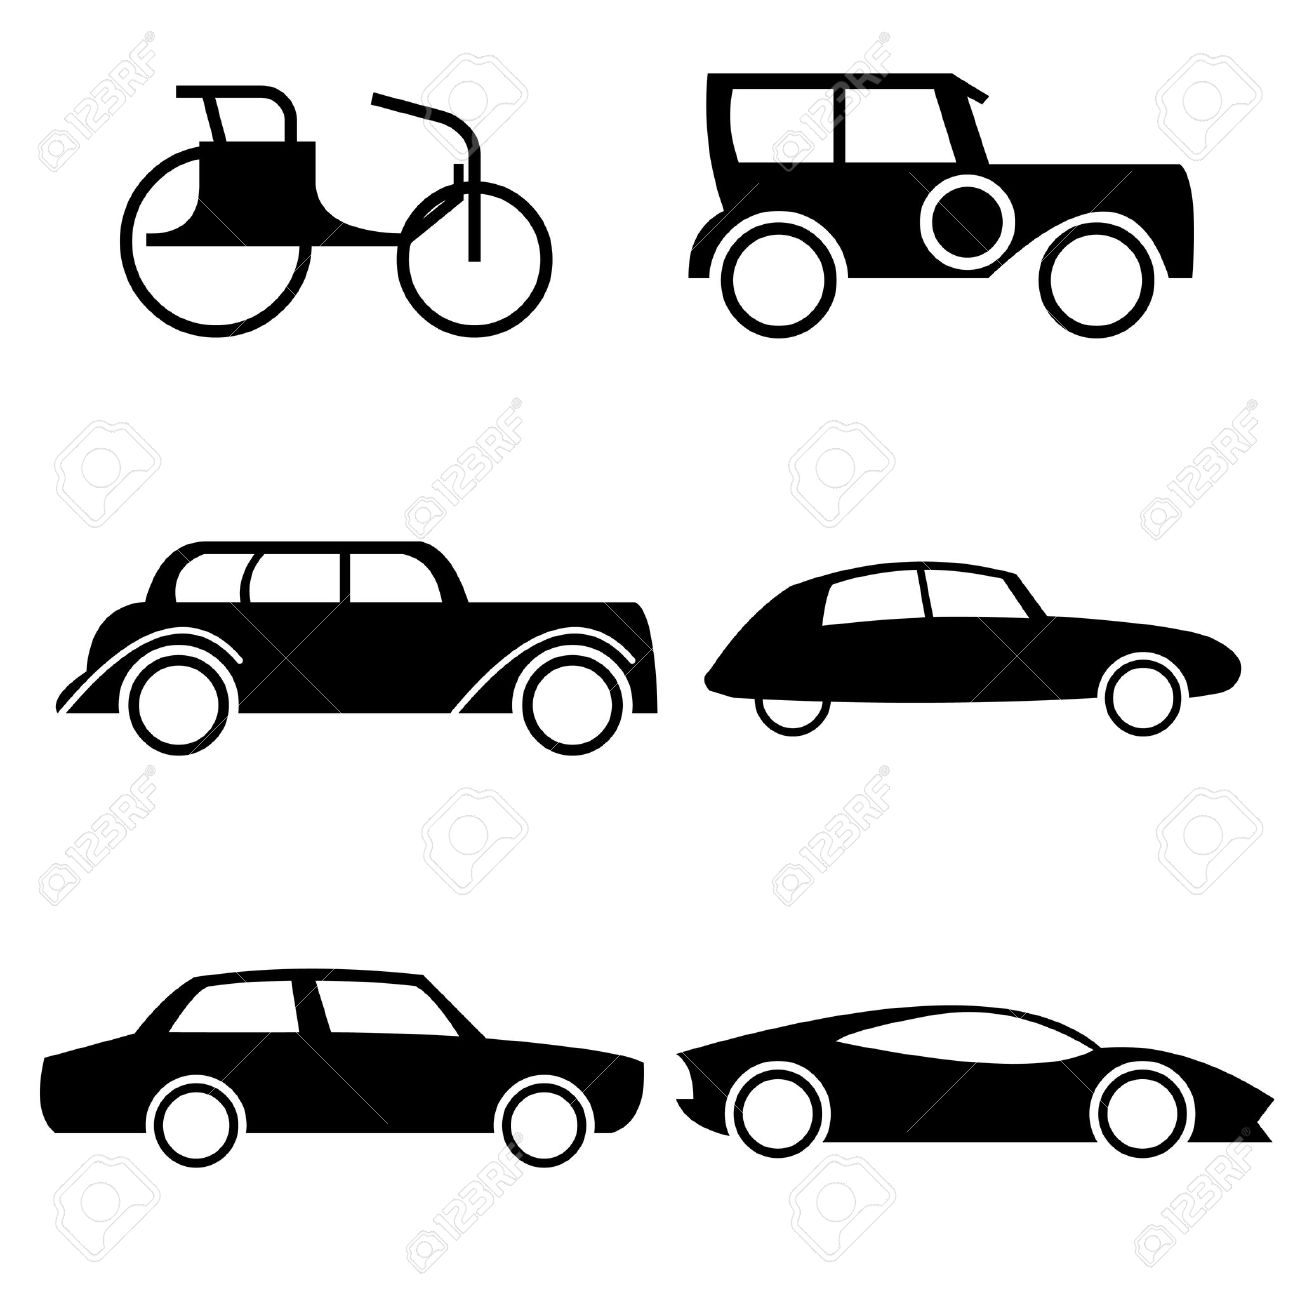 Set Of Icons Representing Evolution Of Cars Through History. Royalty ...